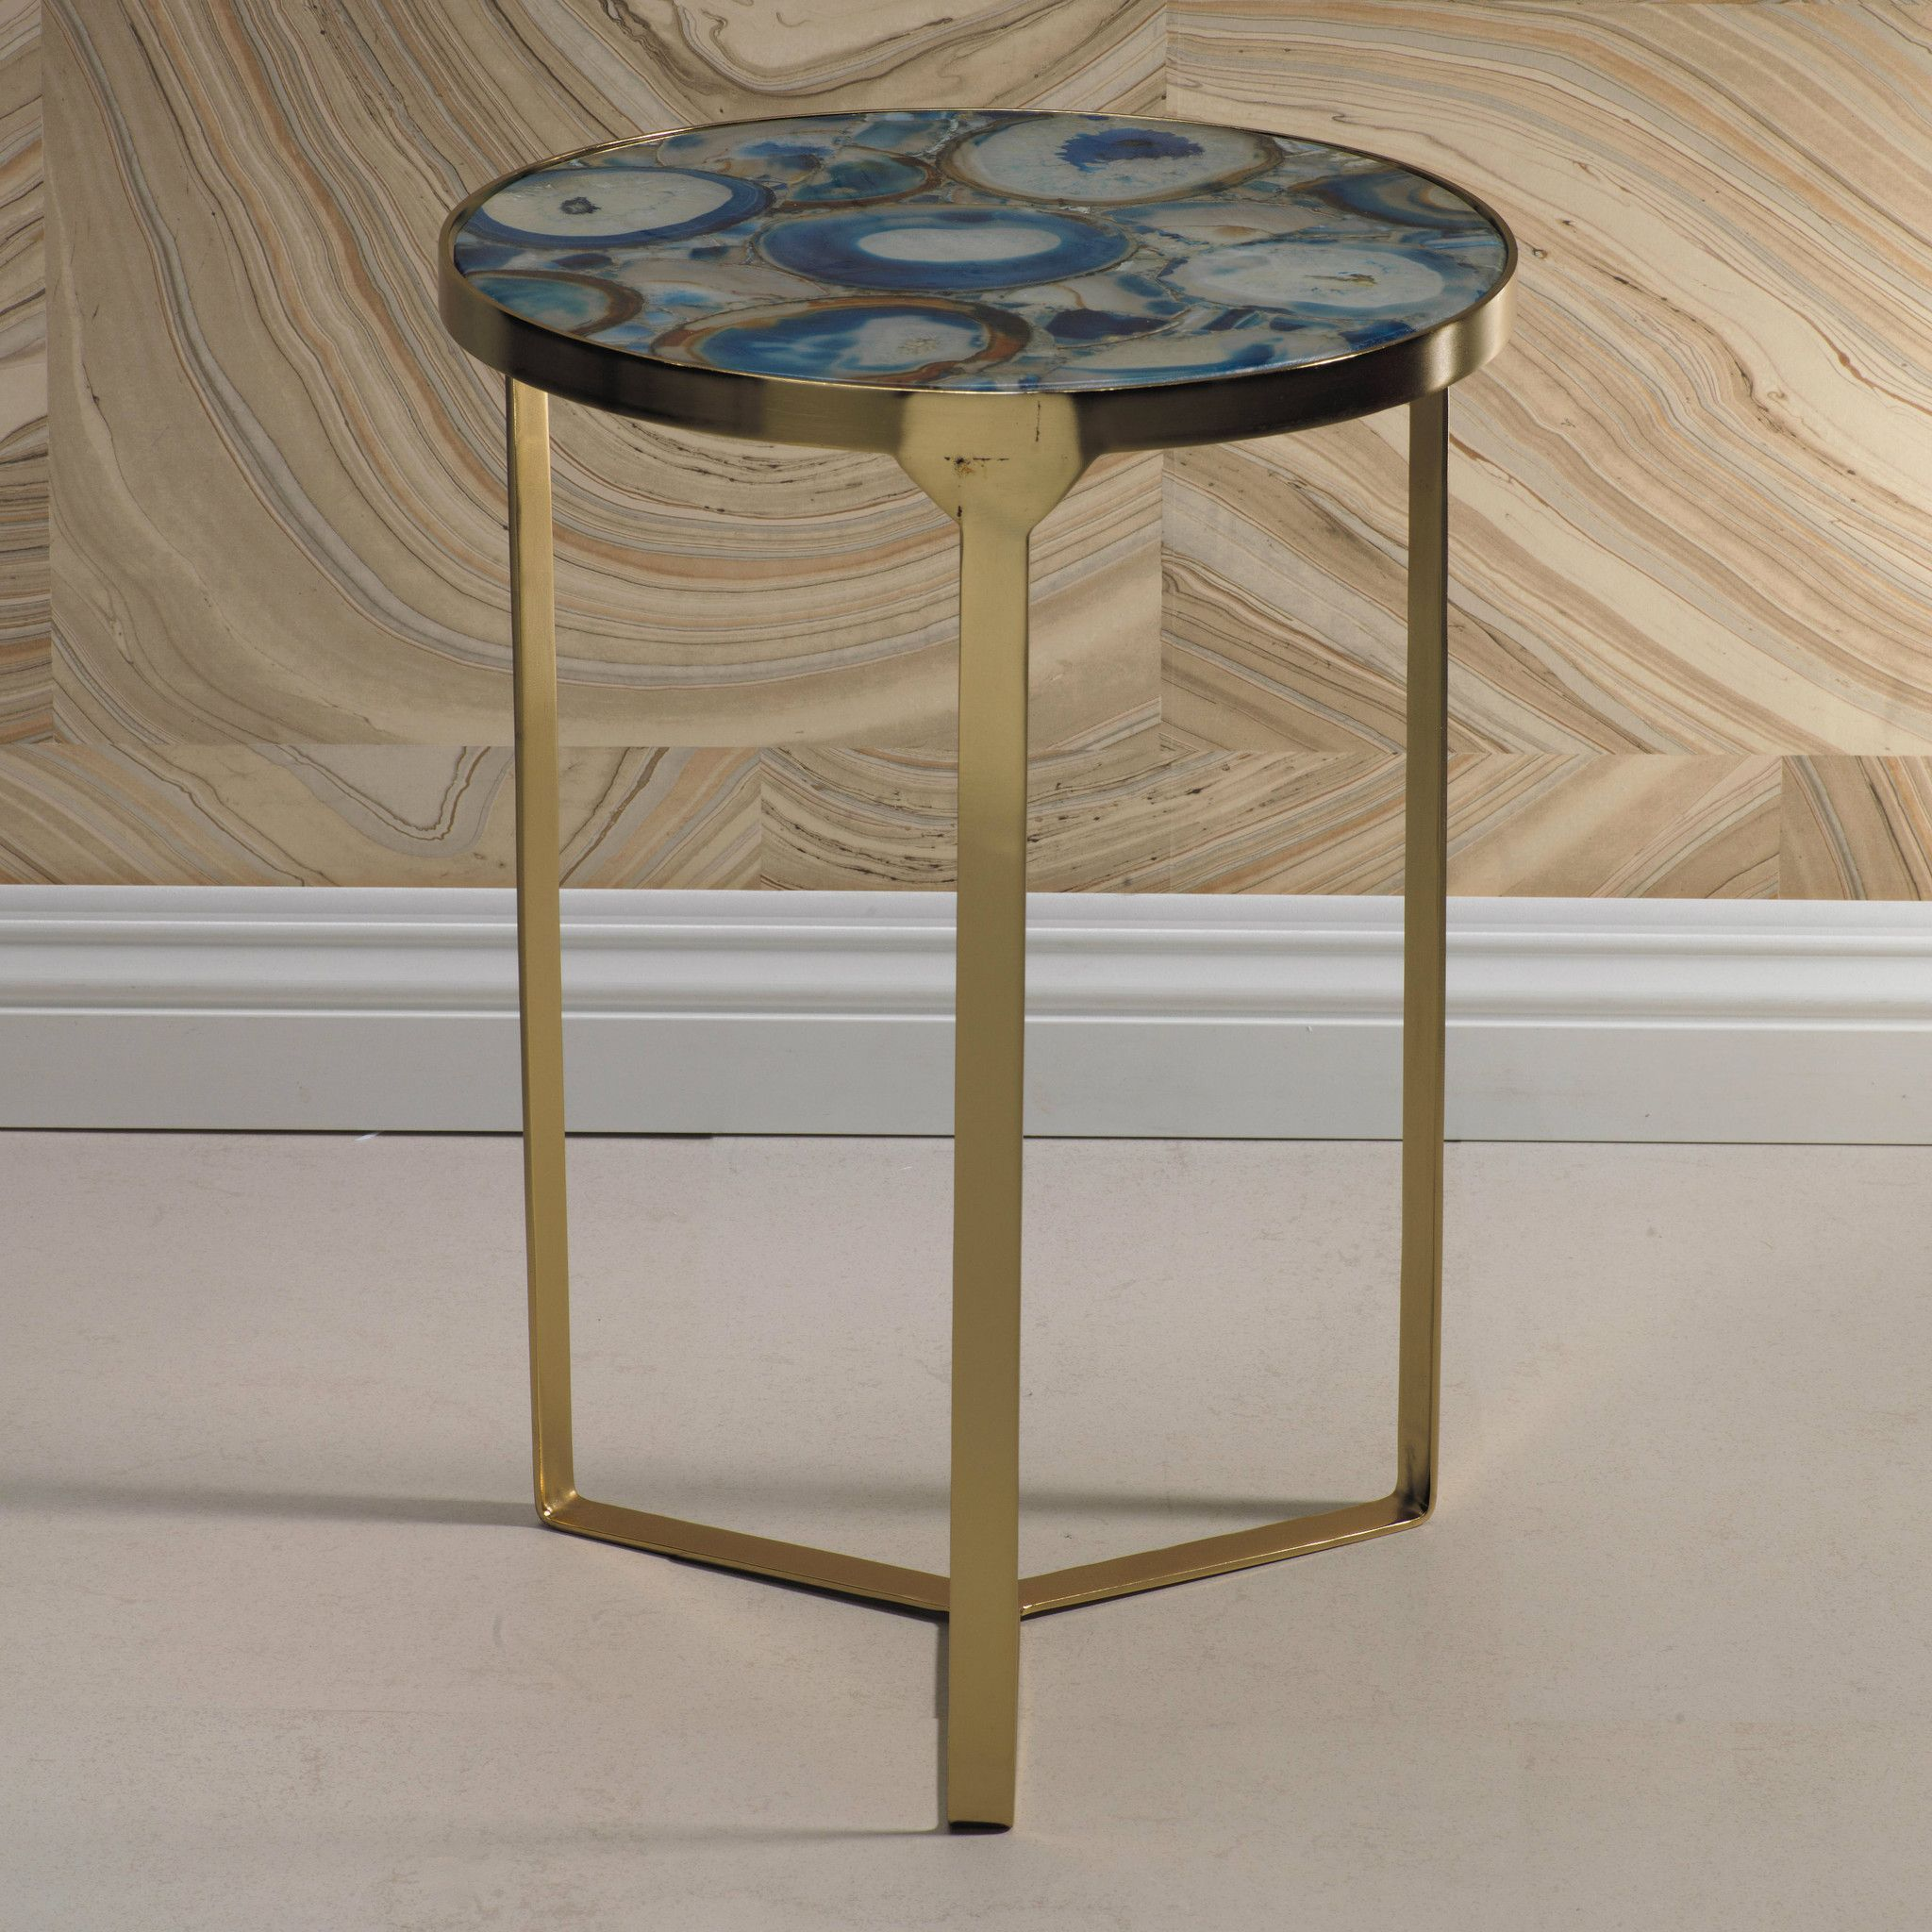 La Sardaigne Blue Agate End Table CARLYLE AVENUE 1